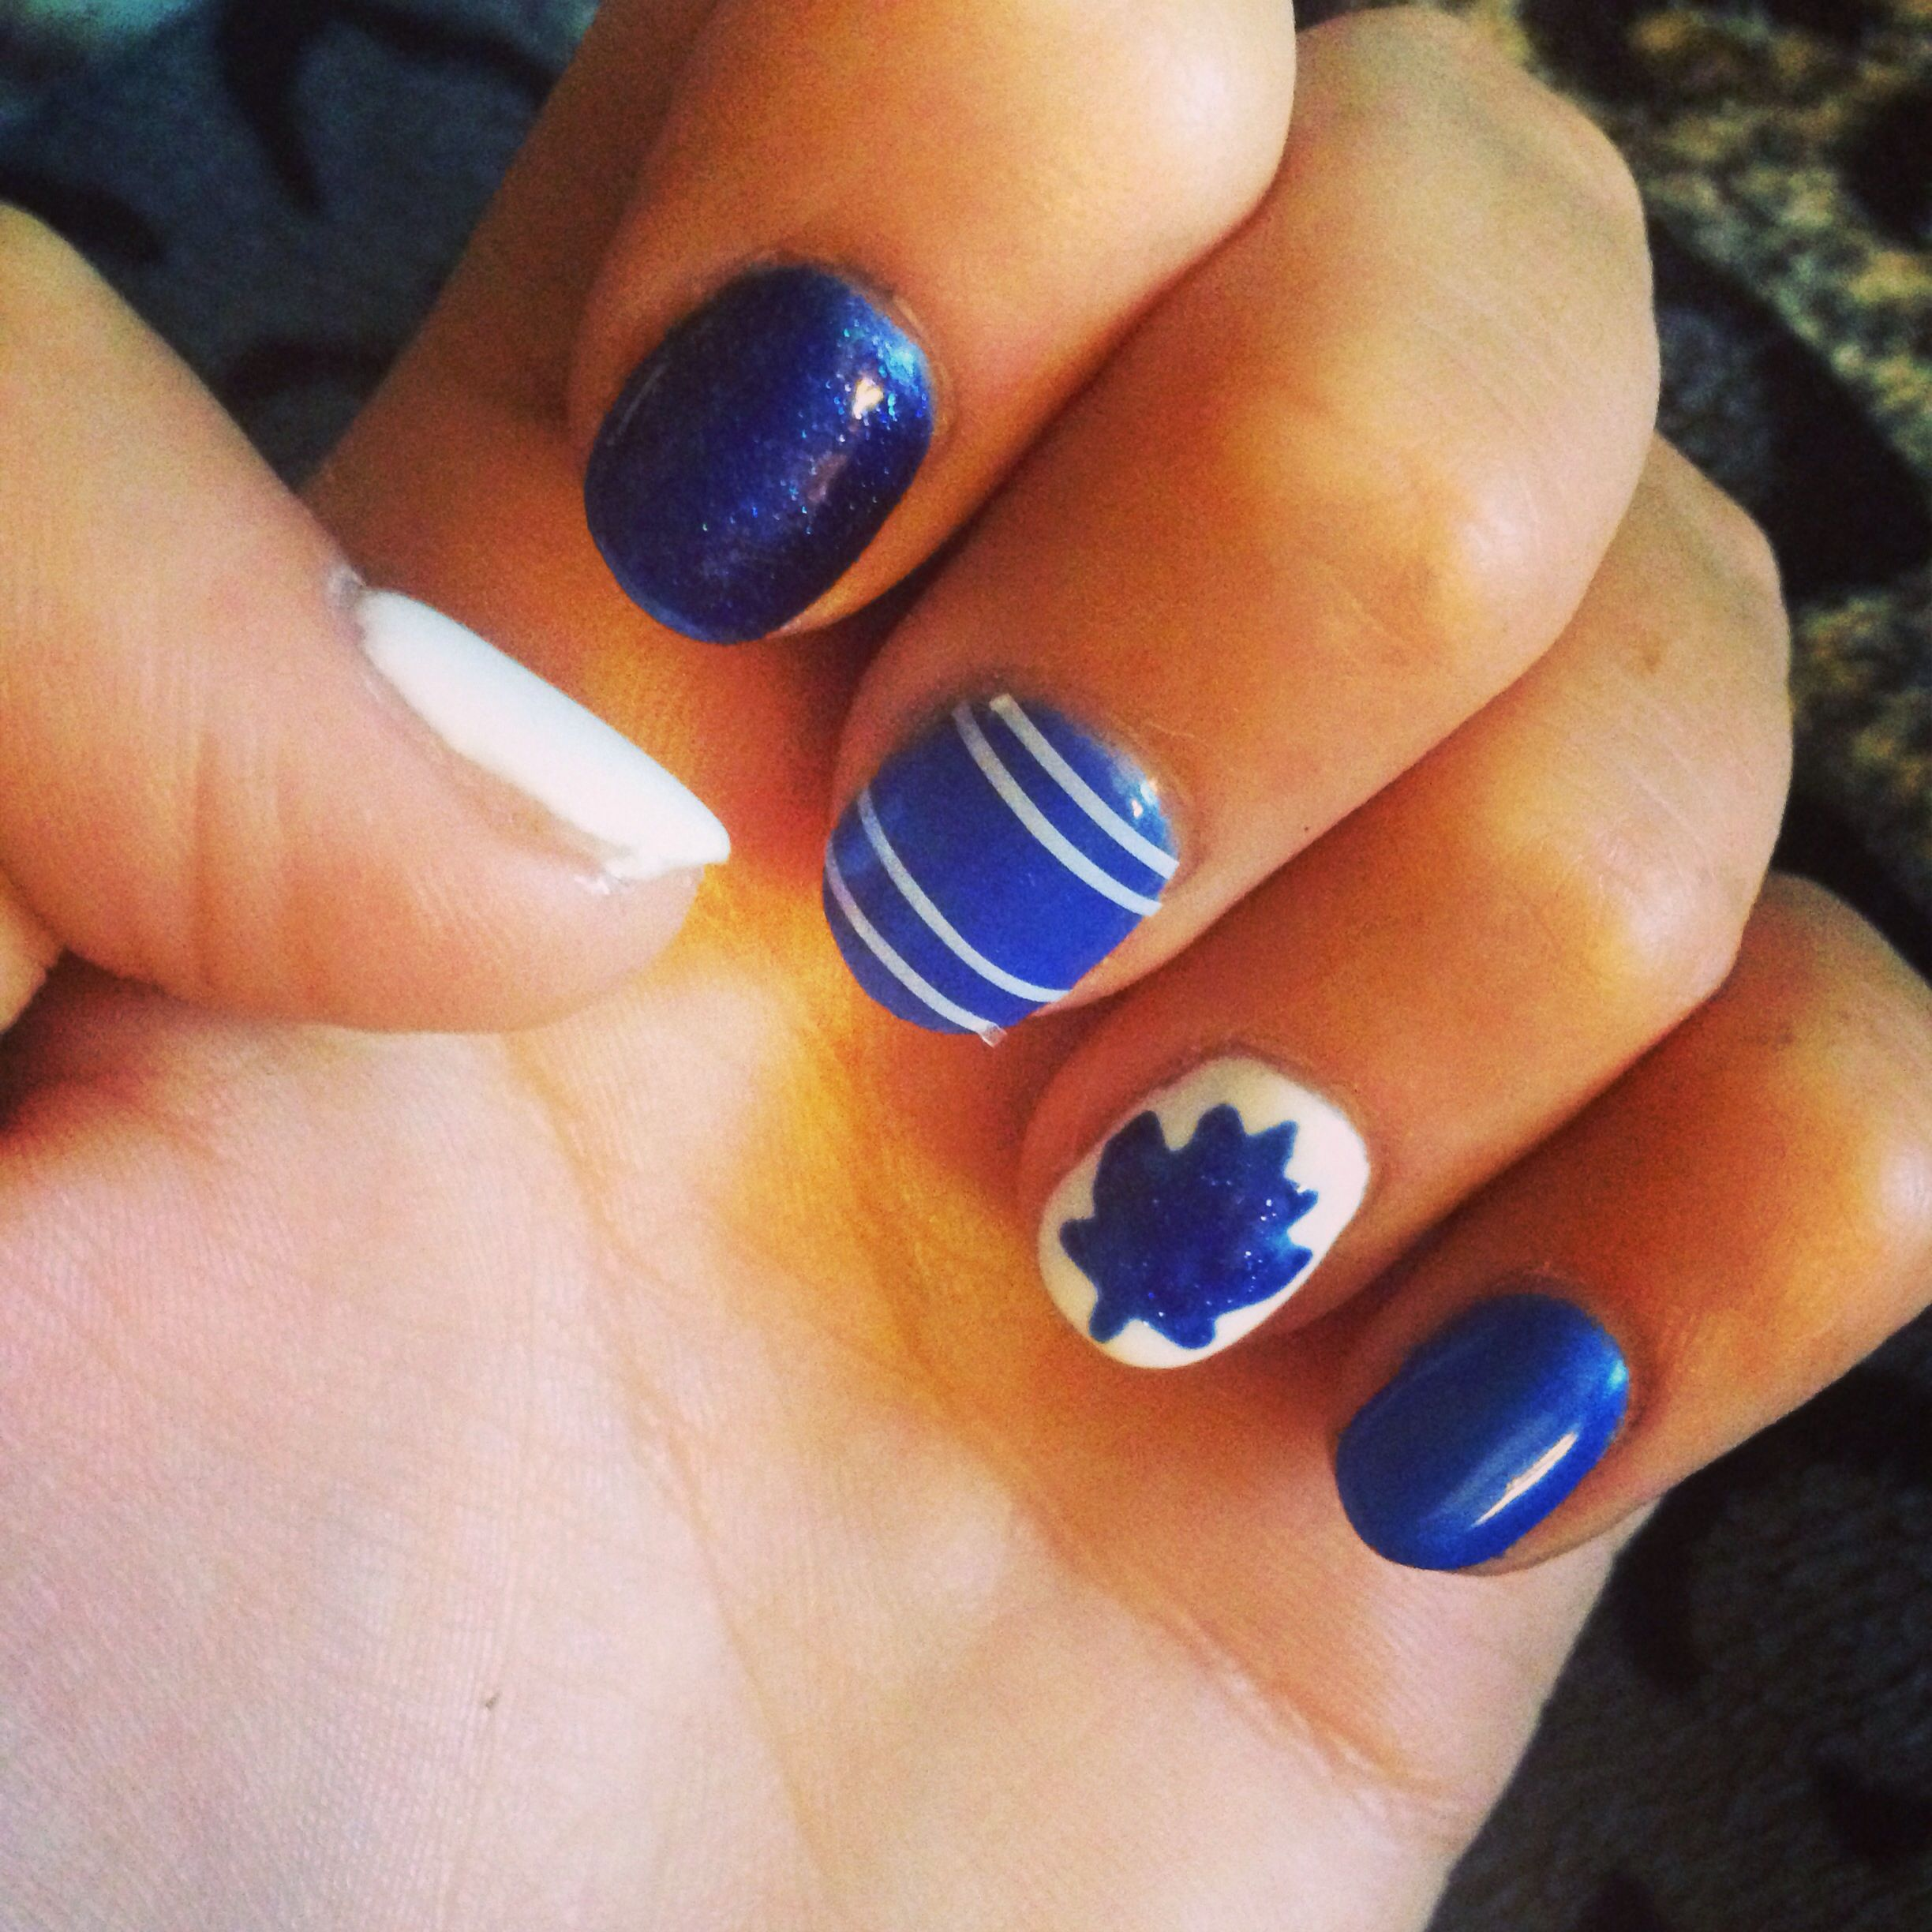 Toronto maple leafs nail art | Nails!! | Pinterest | Toronto maple ...